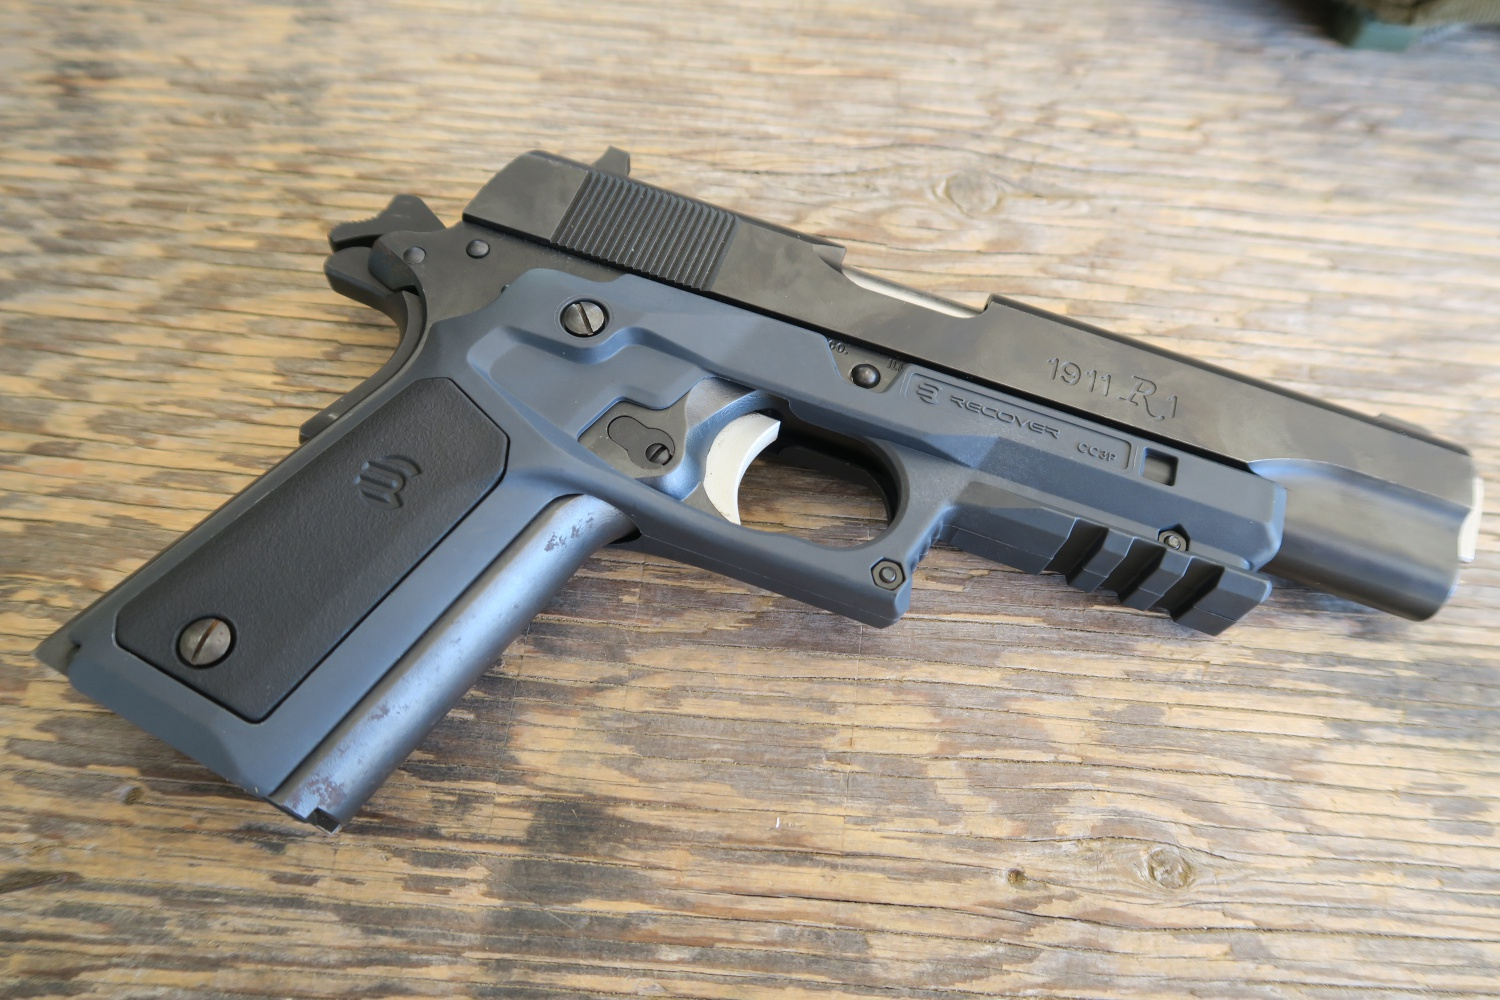 Review: ReCover Tactical 1911 Grips - The Firearm BlogThe Firearm Blog